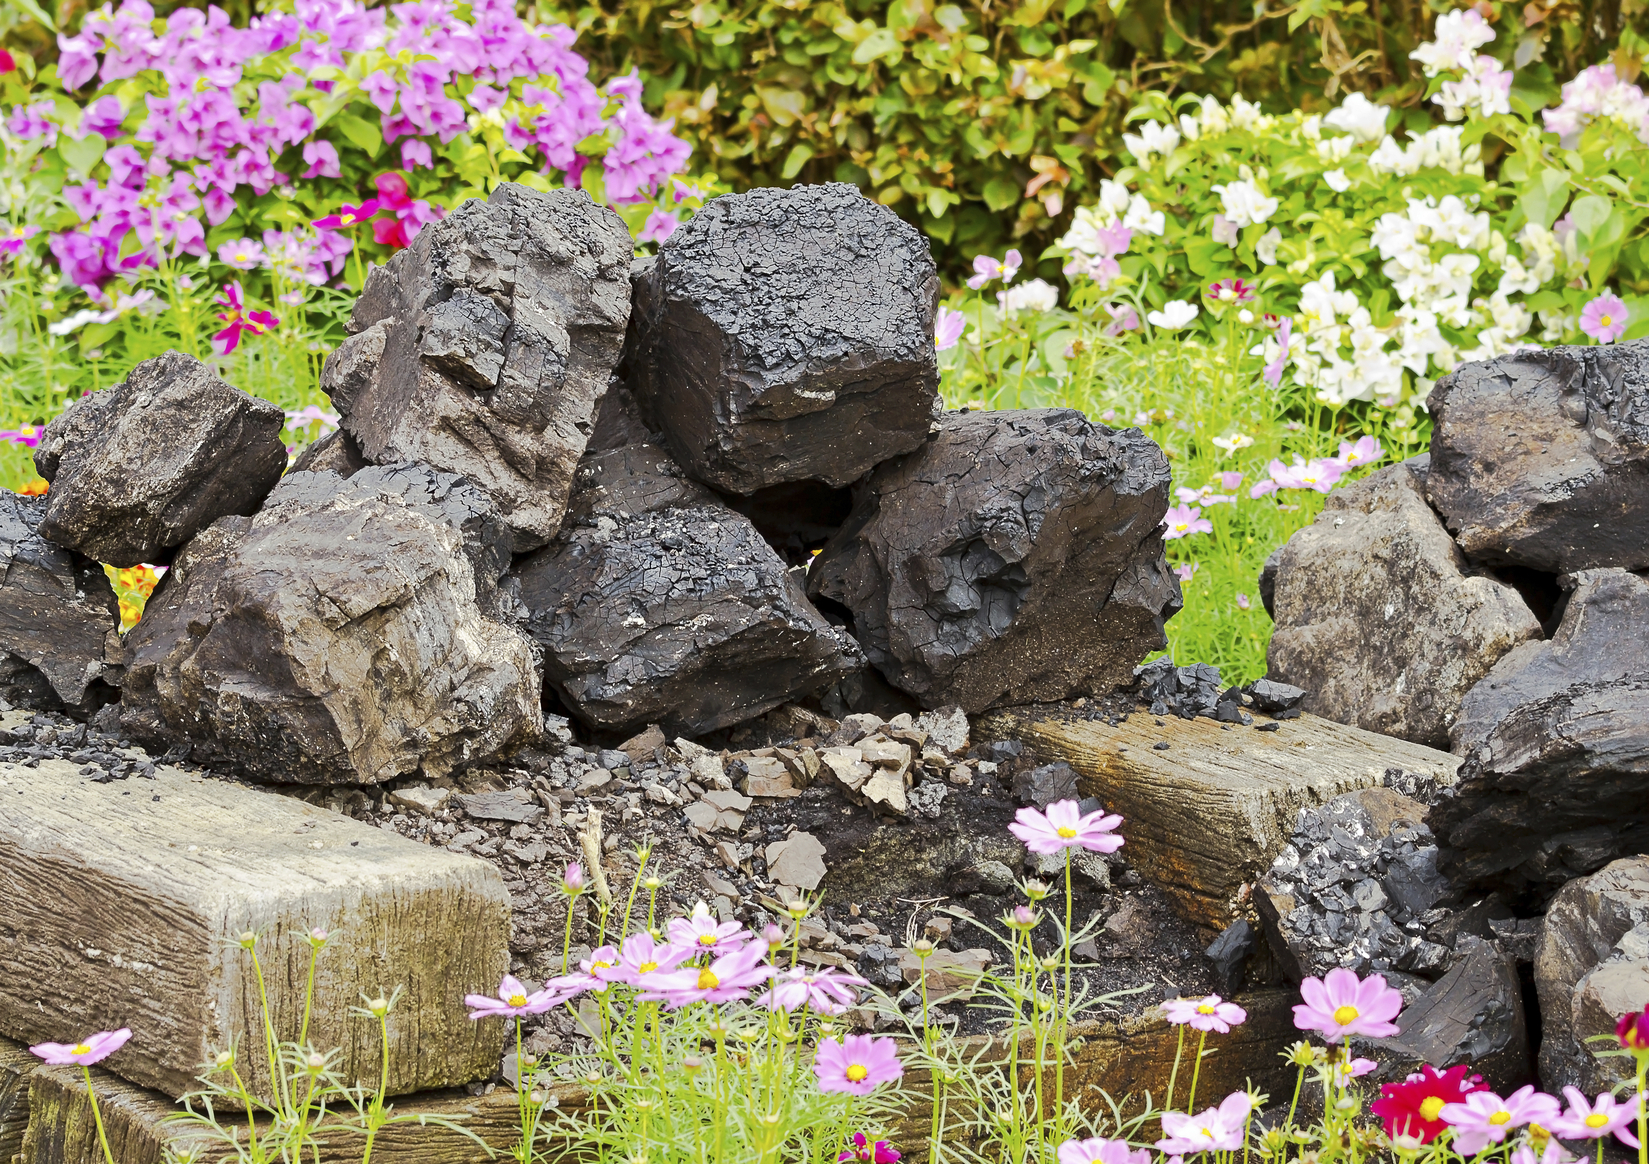 Flowers spring up around a pile of coal. (iStock)